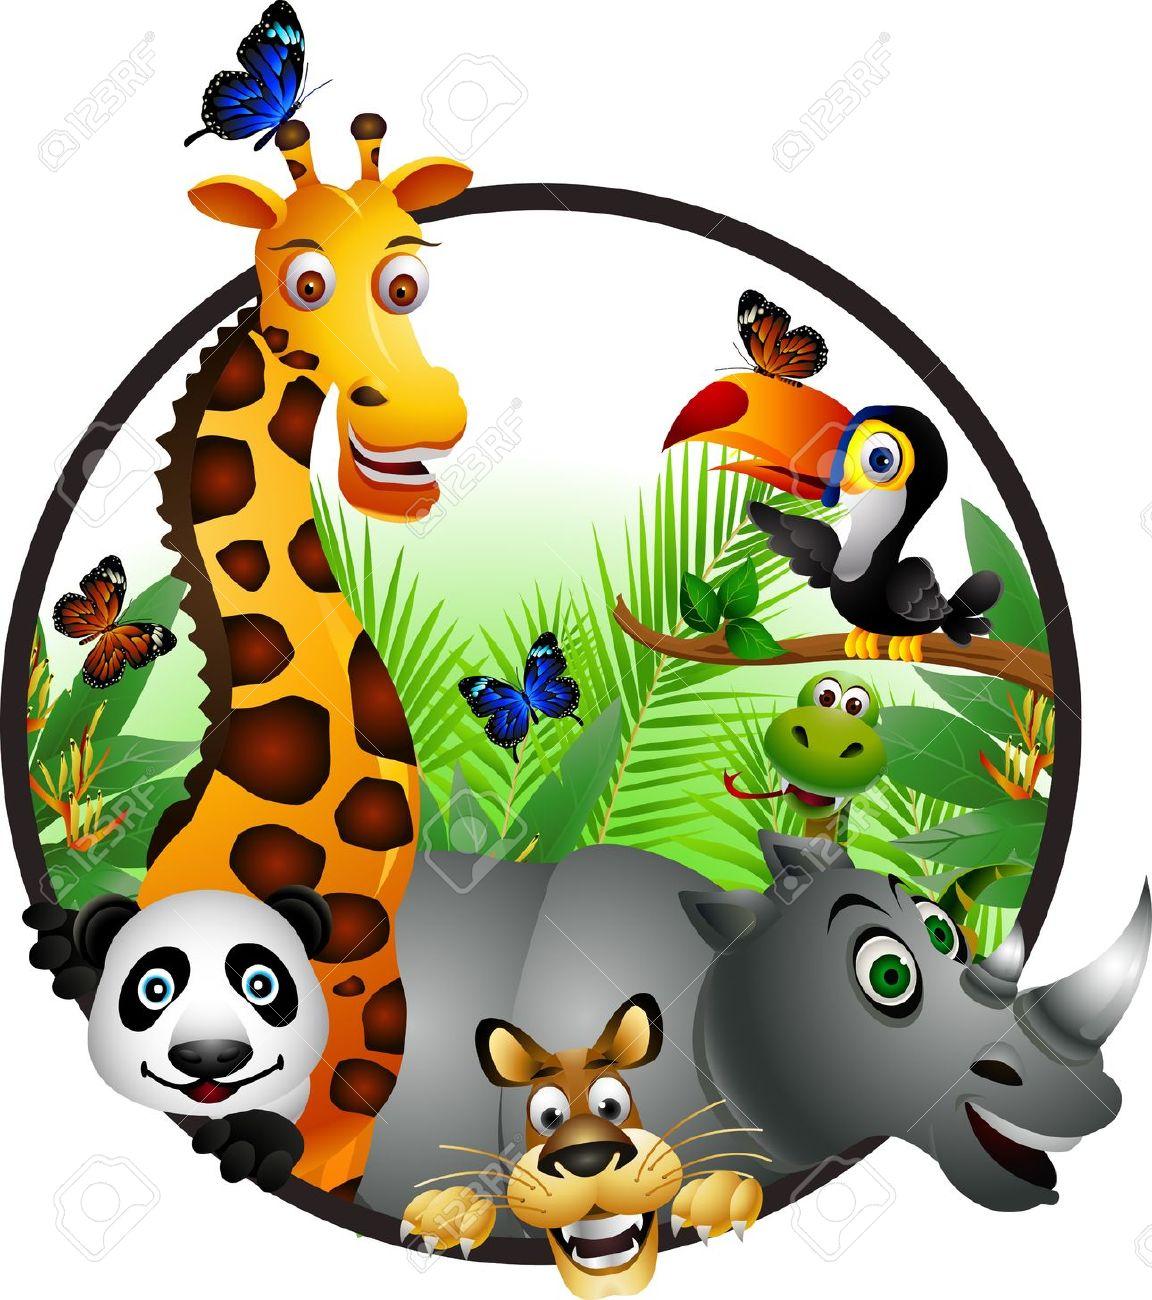 Cartoon Jungle Animals Clipart | Free download on ClipArtMag